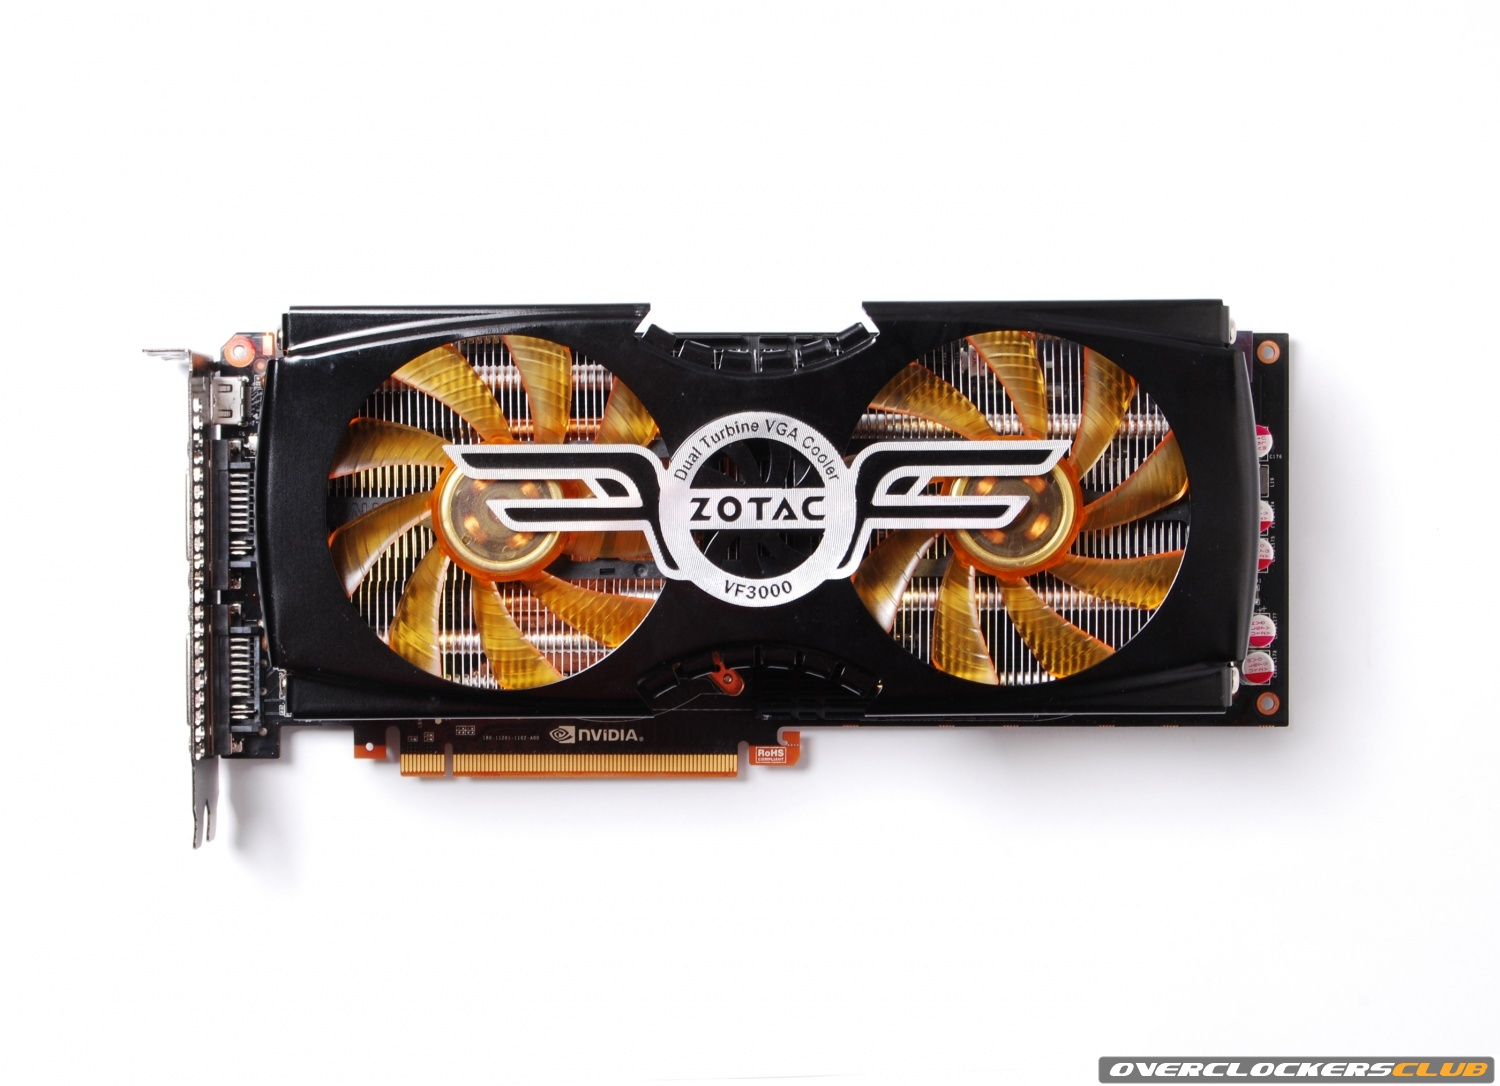 ZOTAC Announces GeForce GTX 580 AMP2! Edition Graphics Card